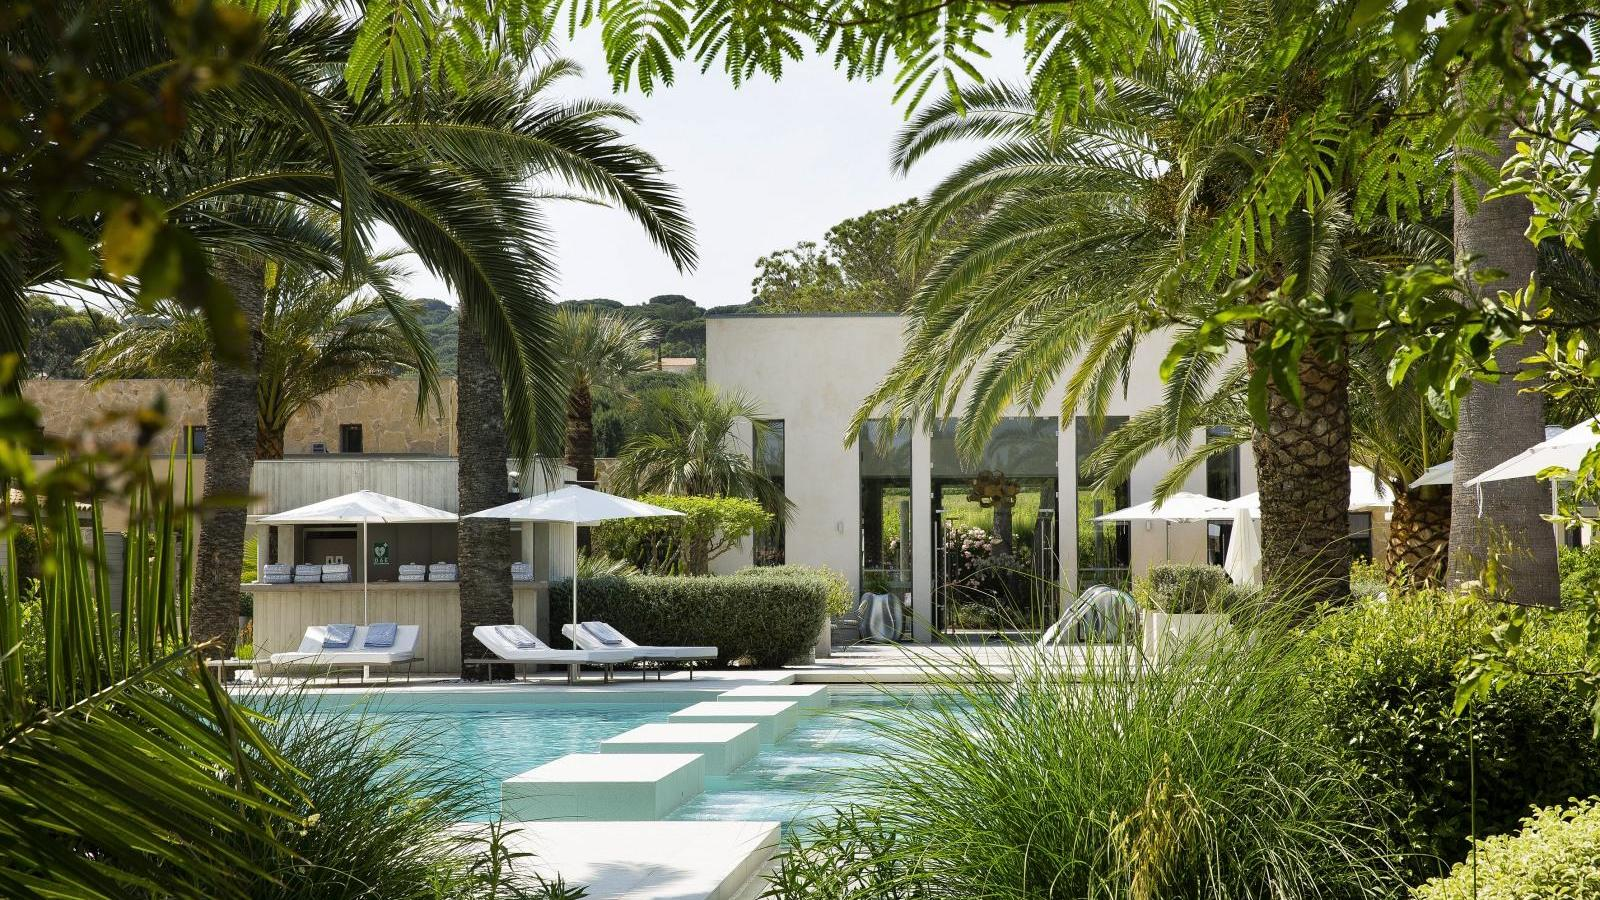 April 20th: the reopening of Sezz Saint-Tropez!